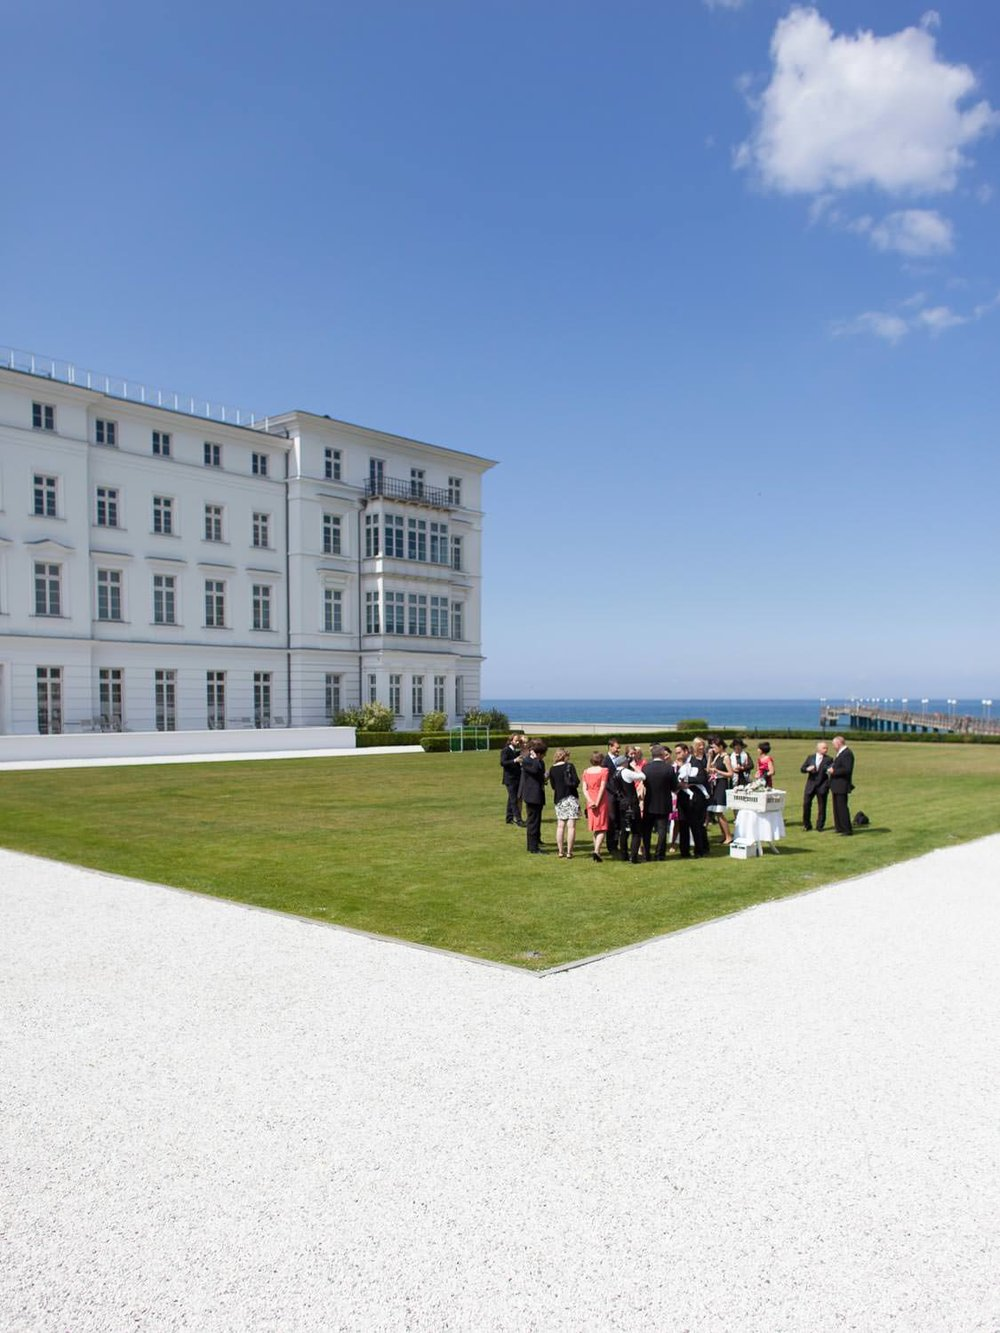 Innenhof Hochzeit Wedding Grand Hotel Heiligendamm